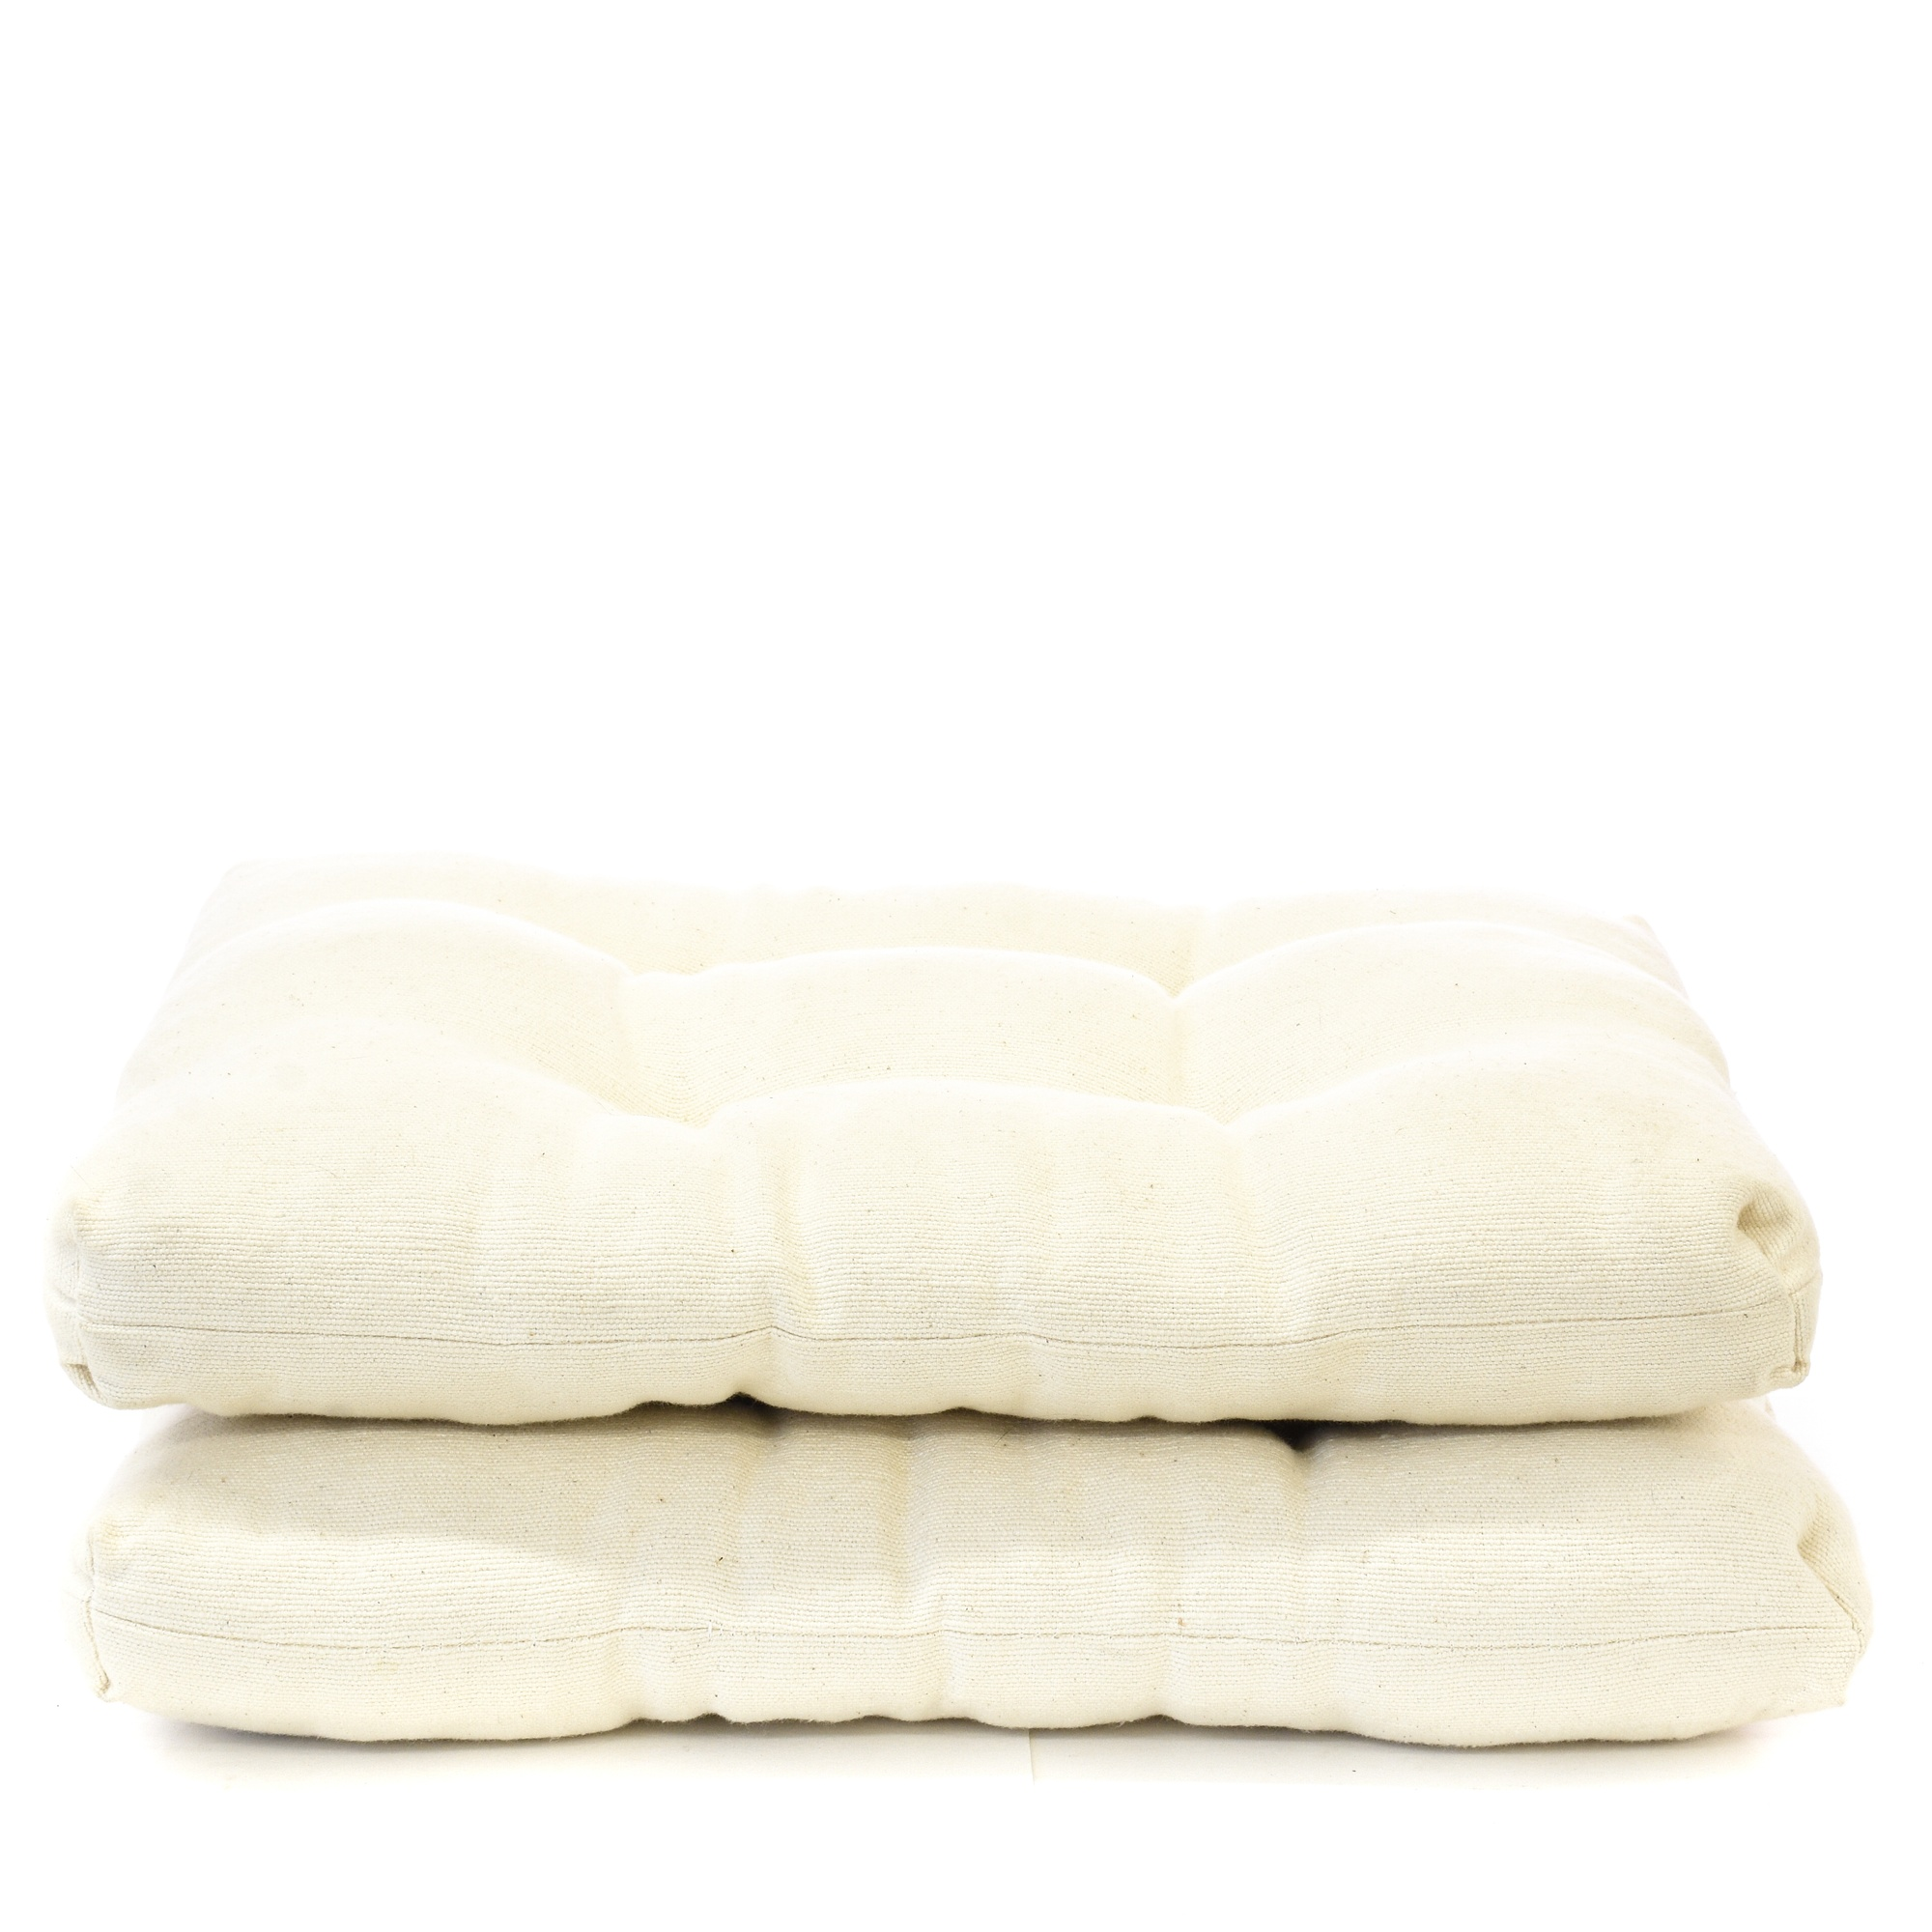 Pair of Large White Tufting Cushion Floor Pillows Loveseat Vintage Furniture San Diego & Los ...